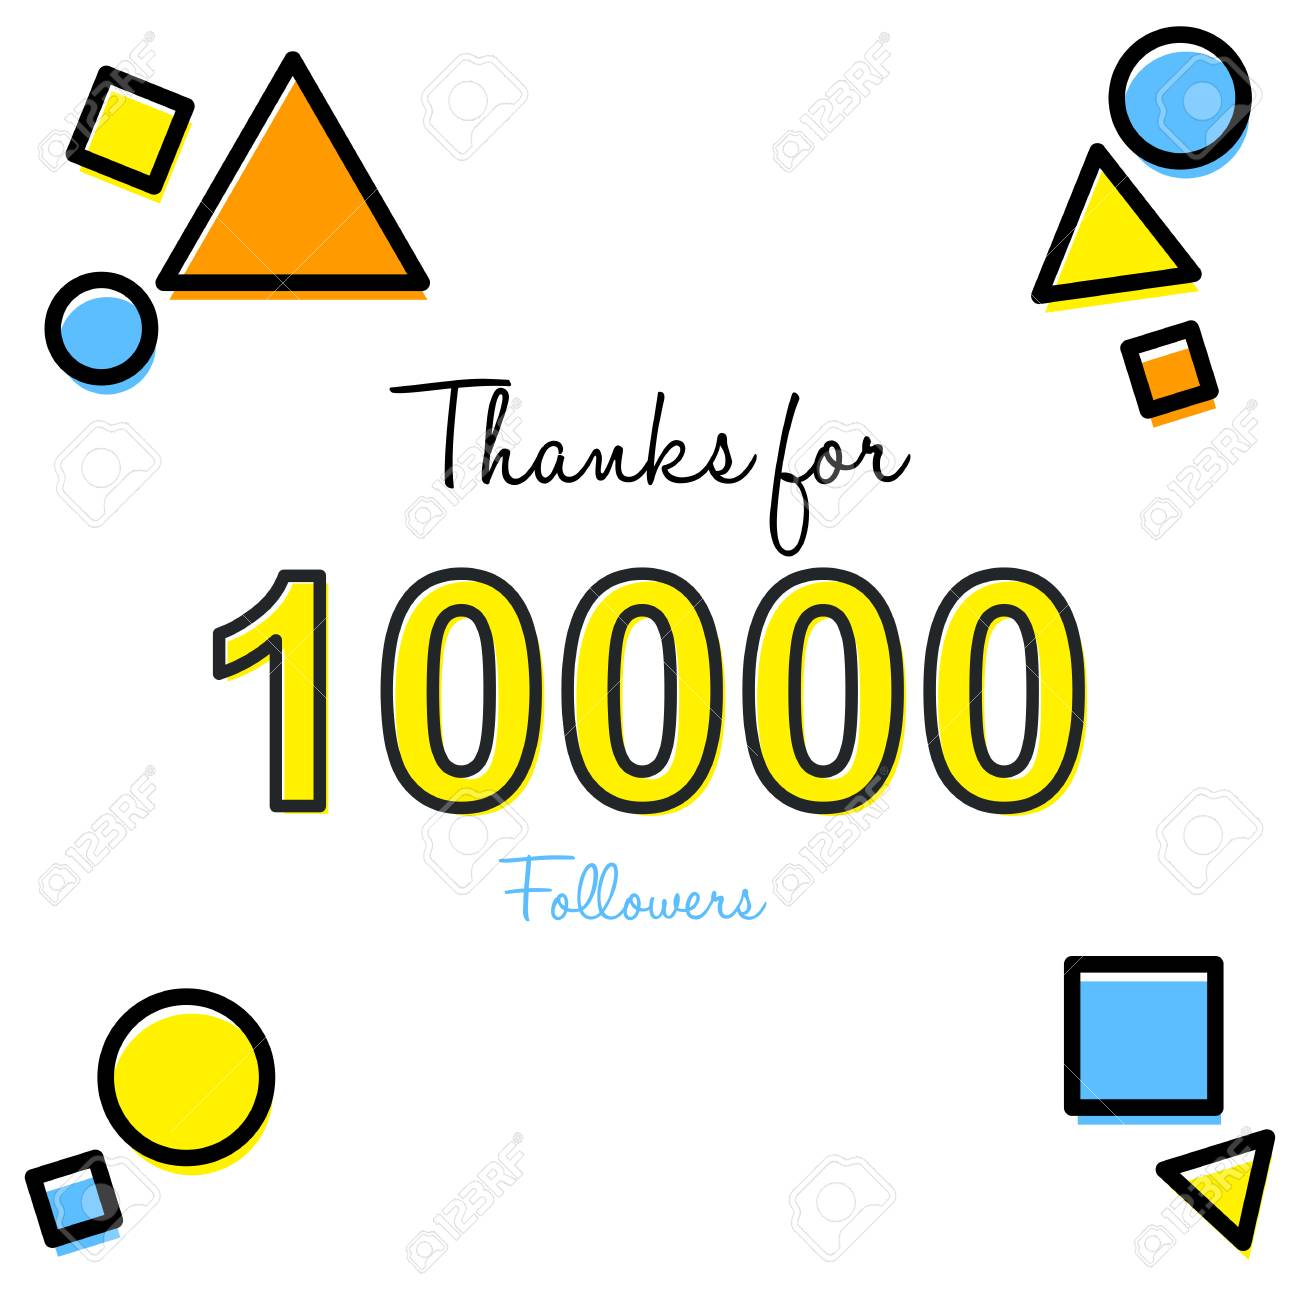 Thank you greeting card for social media followers vector thank you greeting card for social media followers vector illustration stock vector 92604750 m4hsunfo